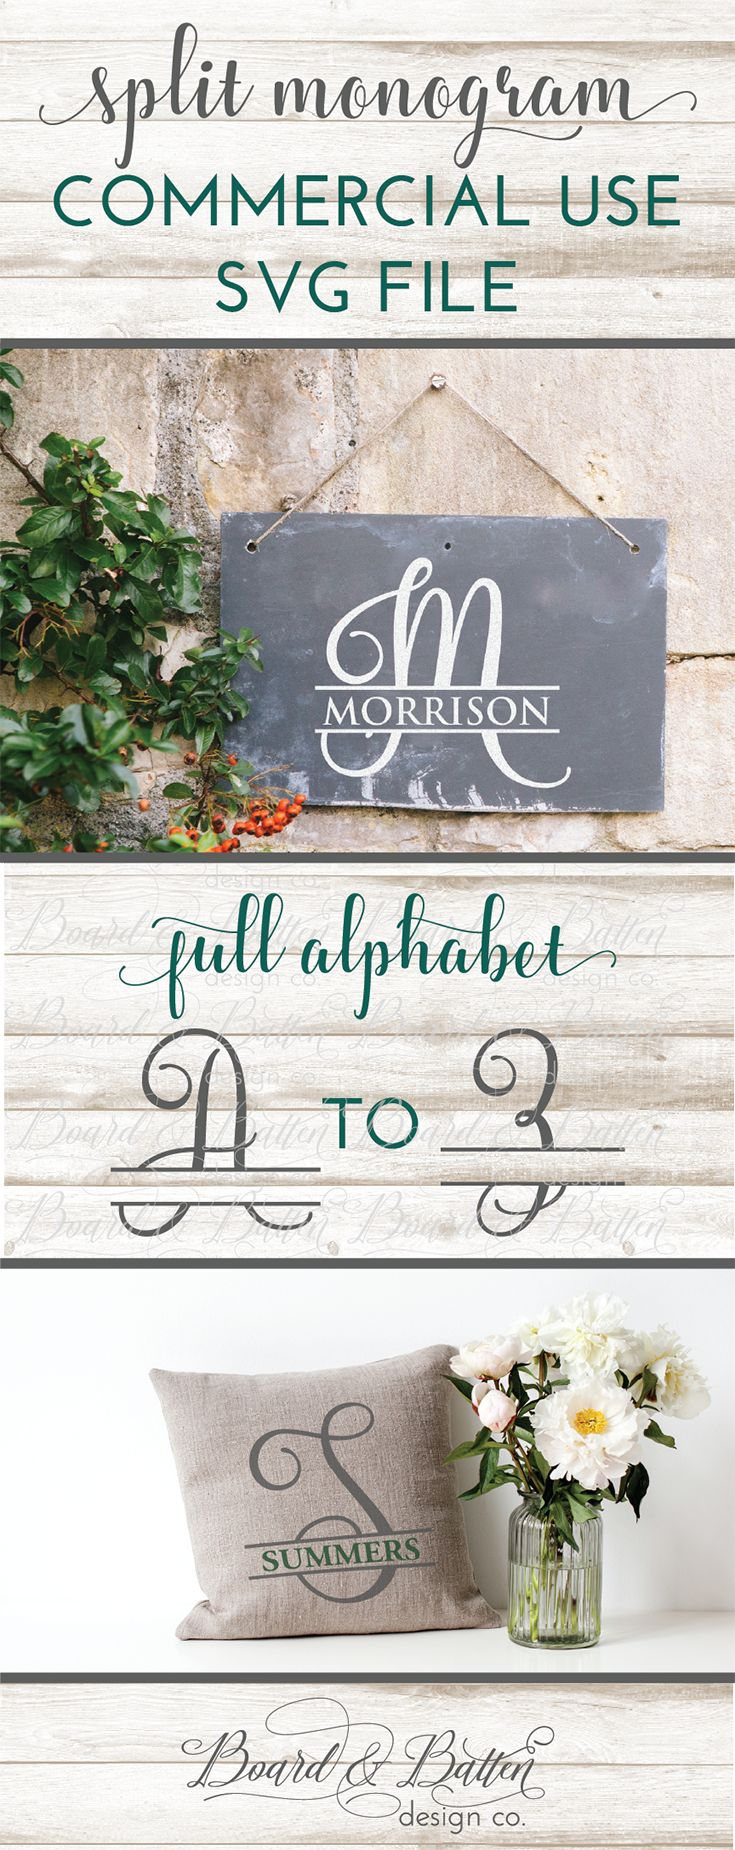 Grab this cute script split monogram SVG File for Personal & Commercial Use today! Split Letter Monograms are a great versatile option for personalizing anything with your Silhouette or Cricut. They make great wooden signs, throw pillows, wall decals, mailbox decals, and more. Comes in SVG, EPS, DXF and PNG formats.